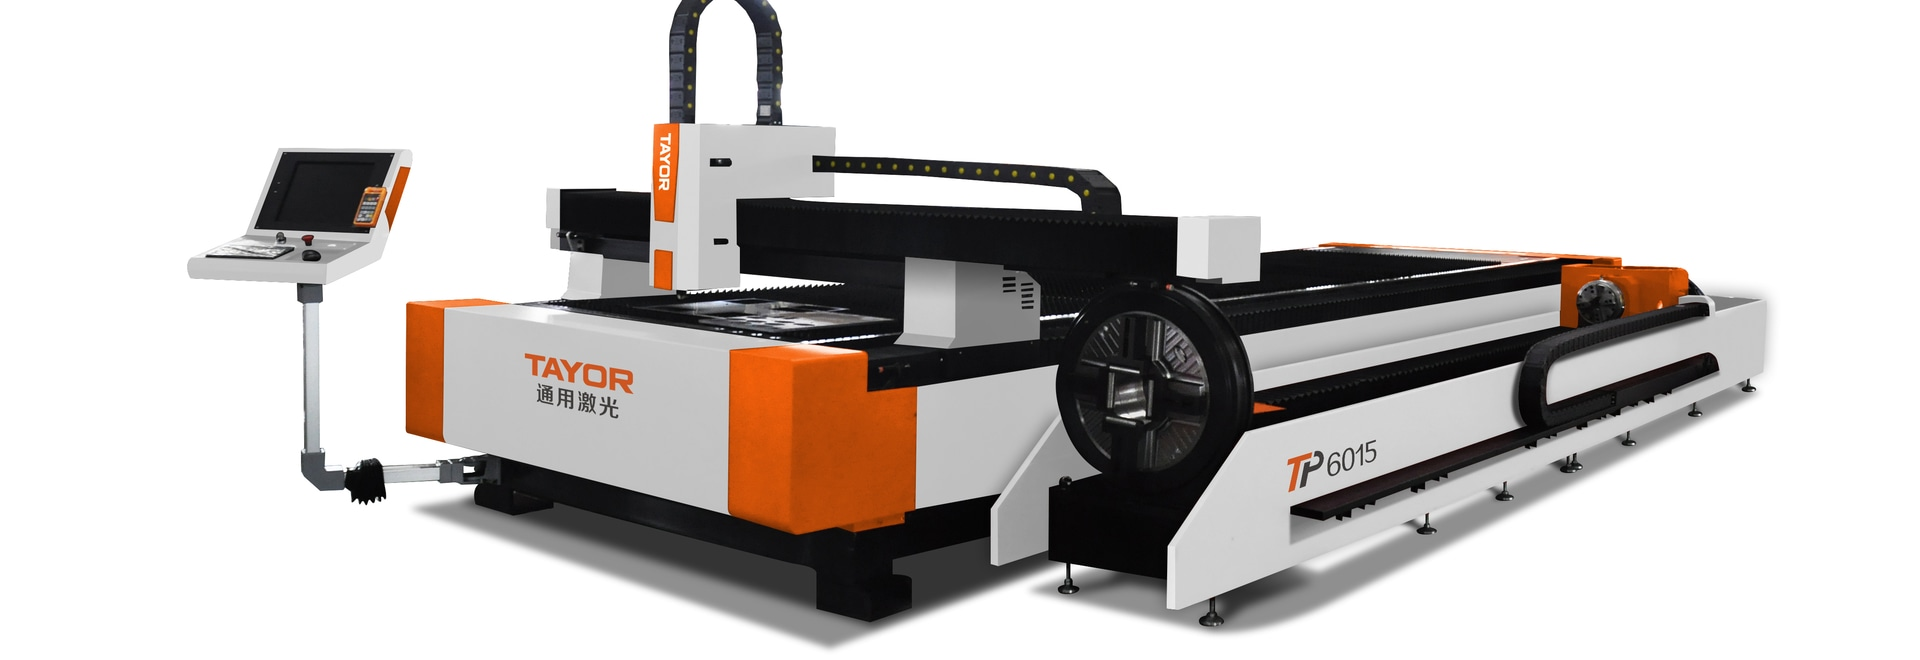 Laser Cutting Machine Metal Cnctp Edge Cnc Fiber Laser Cutting Machine For Tube And Sheet